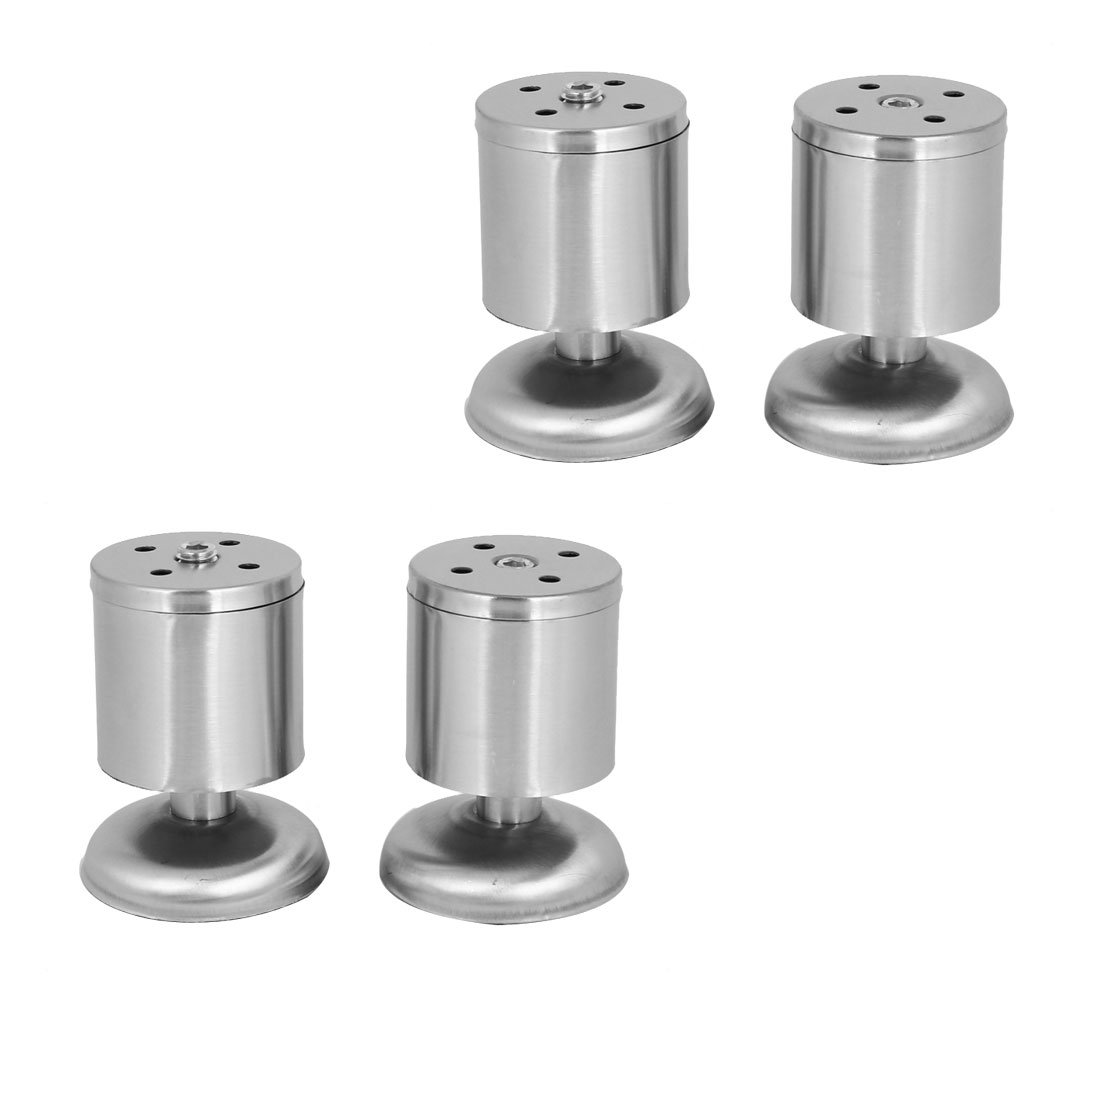 uxcell Furniture Cabinet Bed Table 50mmx80mm Round Shape Metal Adjustable Leg Feet 4pcs